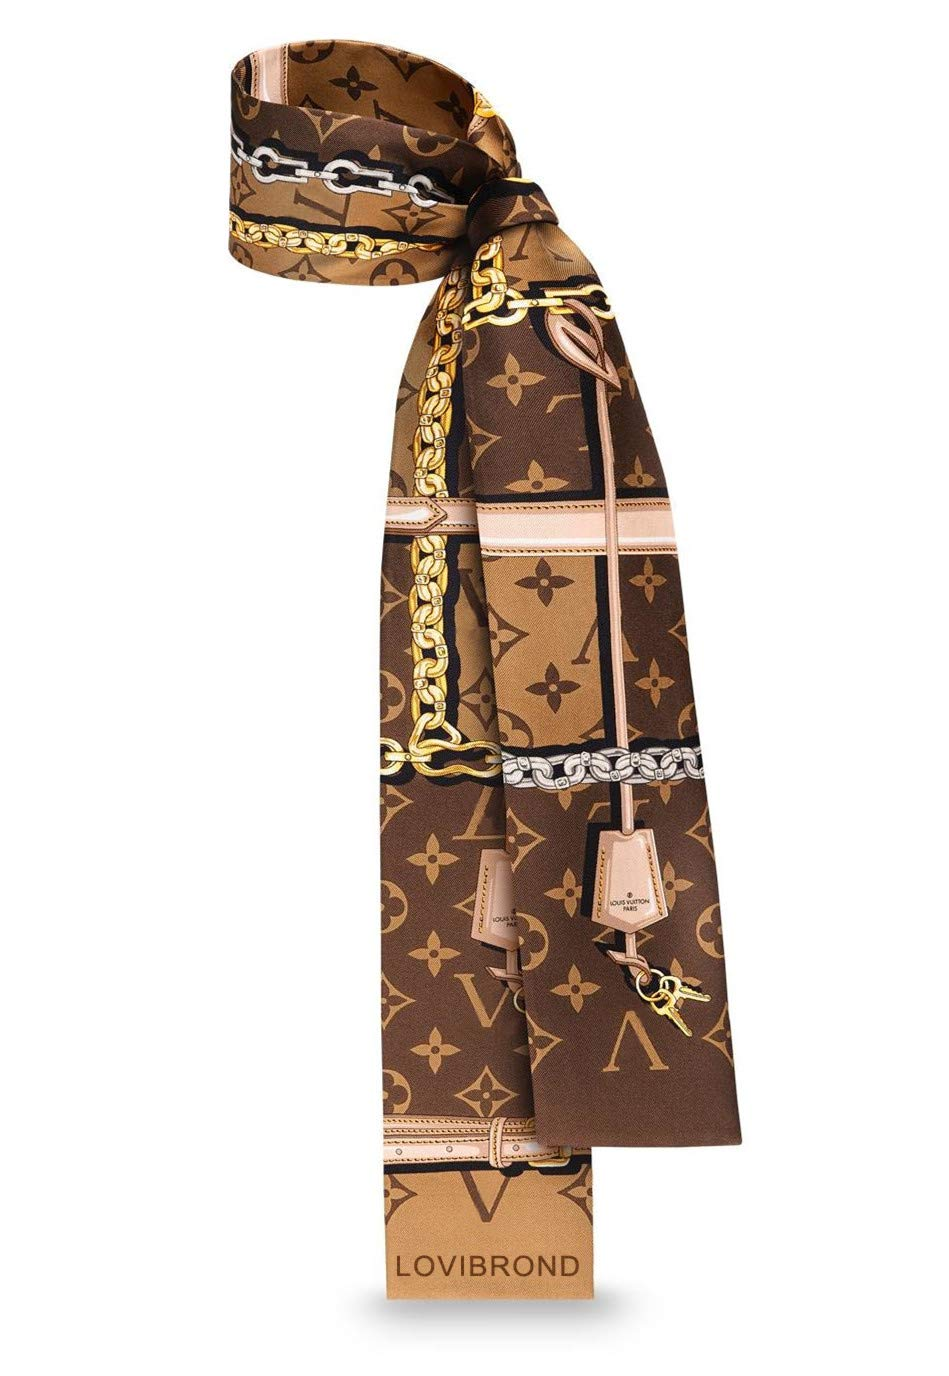 Luxury Fashion LOVI TRUNKS MONOGRAM CONFIDENTIAL SILK Brown BANDEAU Headband Slim scarf wrist ornaments bag complement M78655